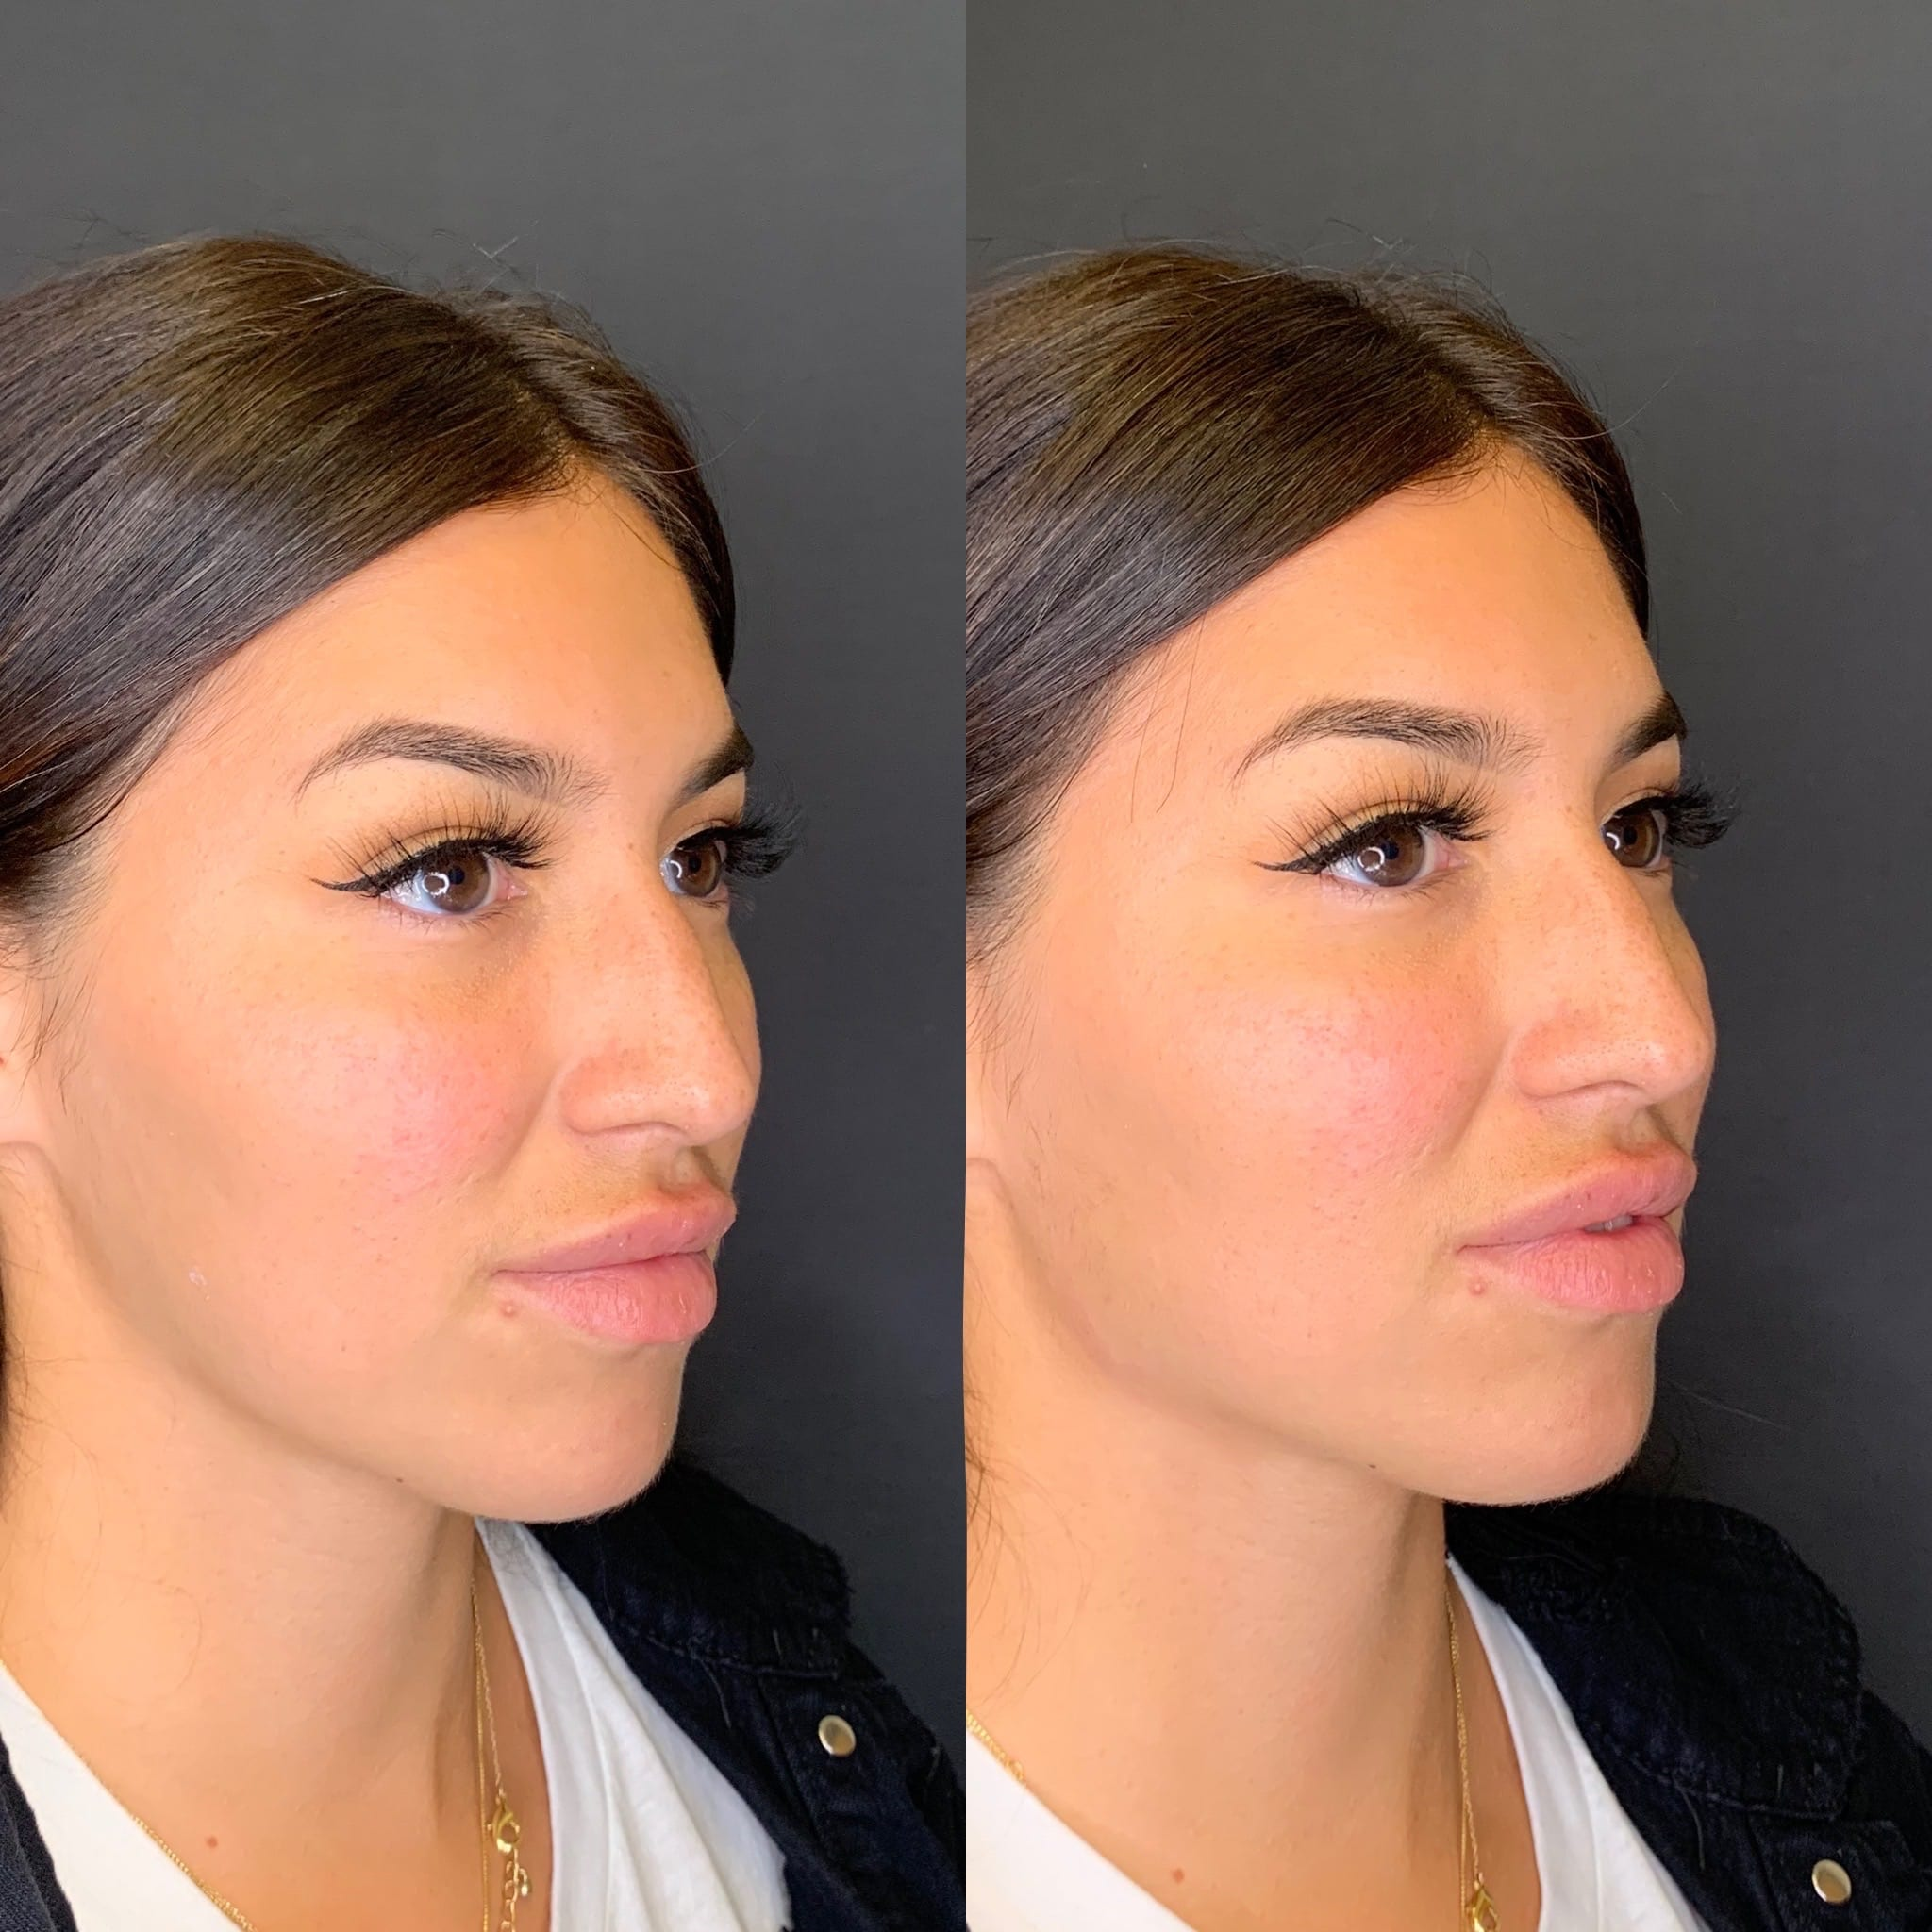 28 Hispanic F immediately after injecting 2 syringes of voluma to her posterior jawline for better contour & definition.